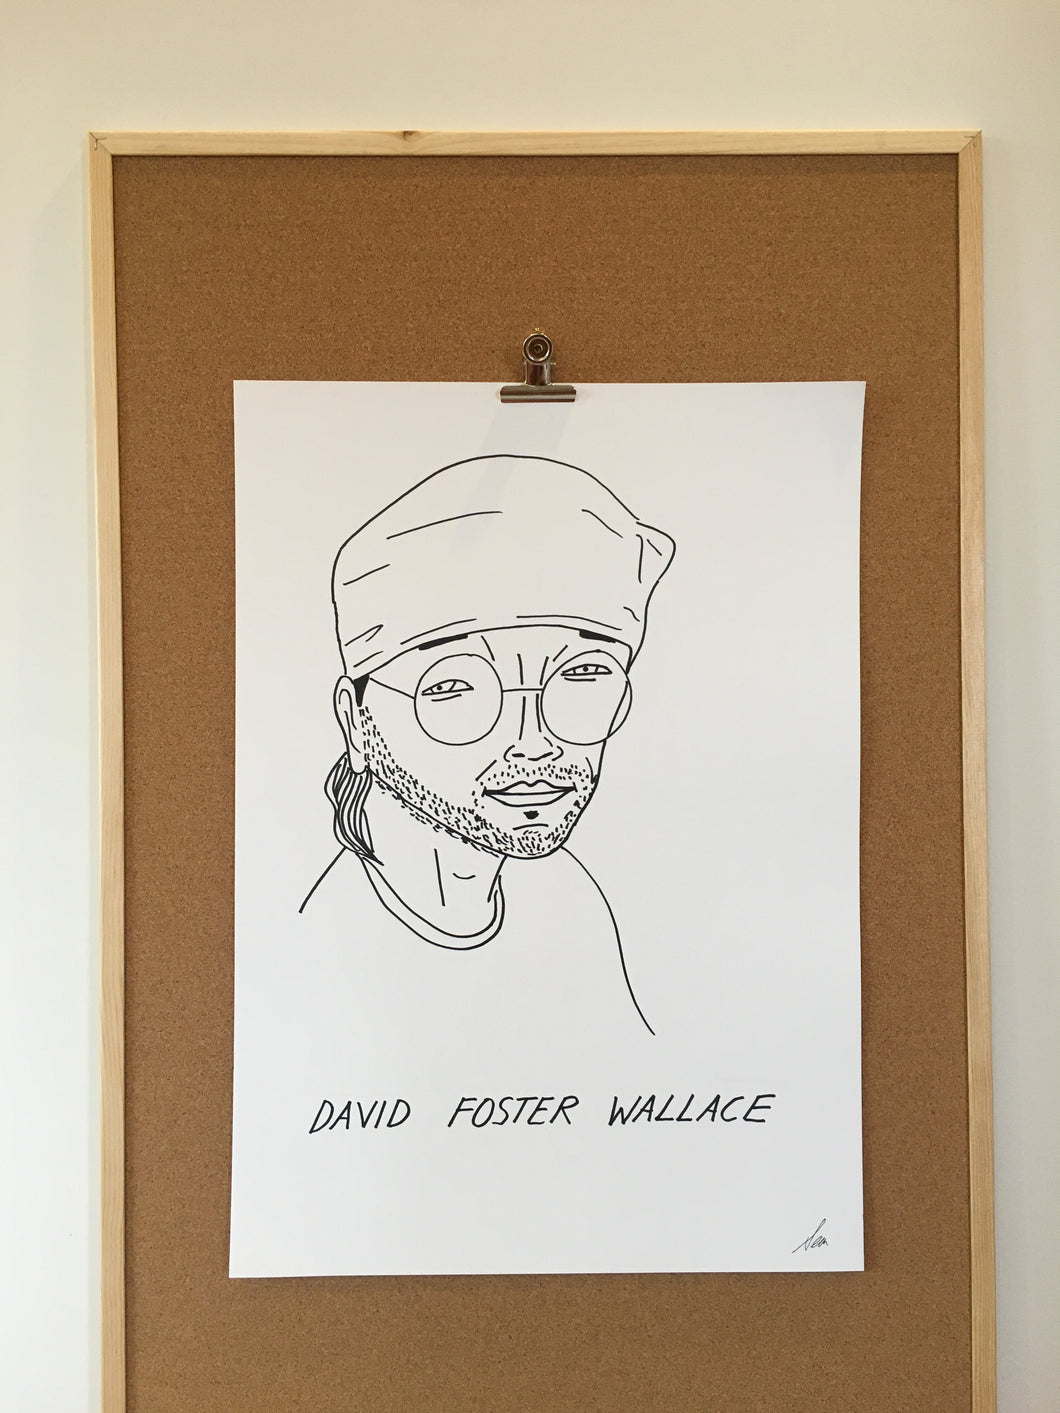 Badly Drawn David Foster Wallace  - Original Drawing - A2.